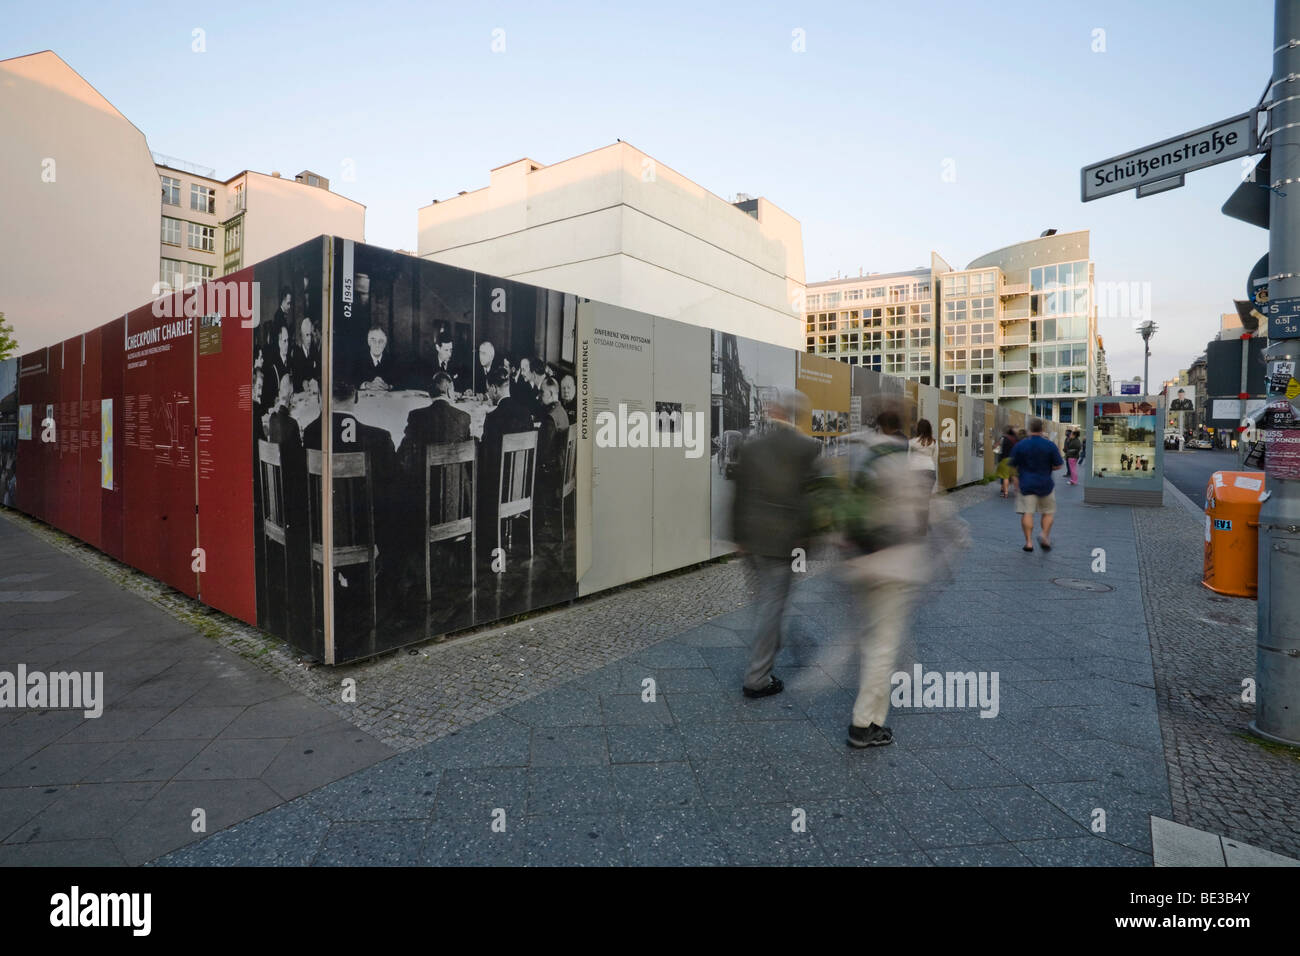 Exhibition and documentation on the Berlin Wall, Checkpoint Charlie, Mitte district, Berlin, Germany, Europe - Stock Image